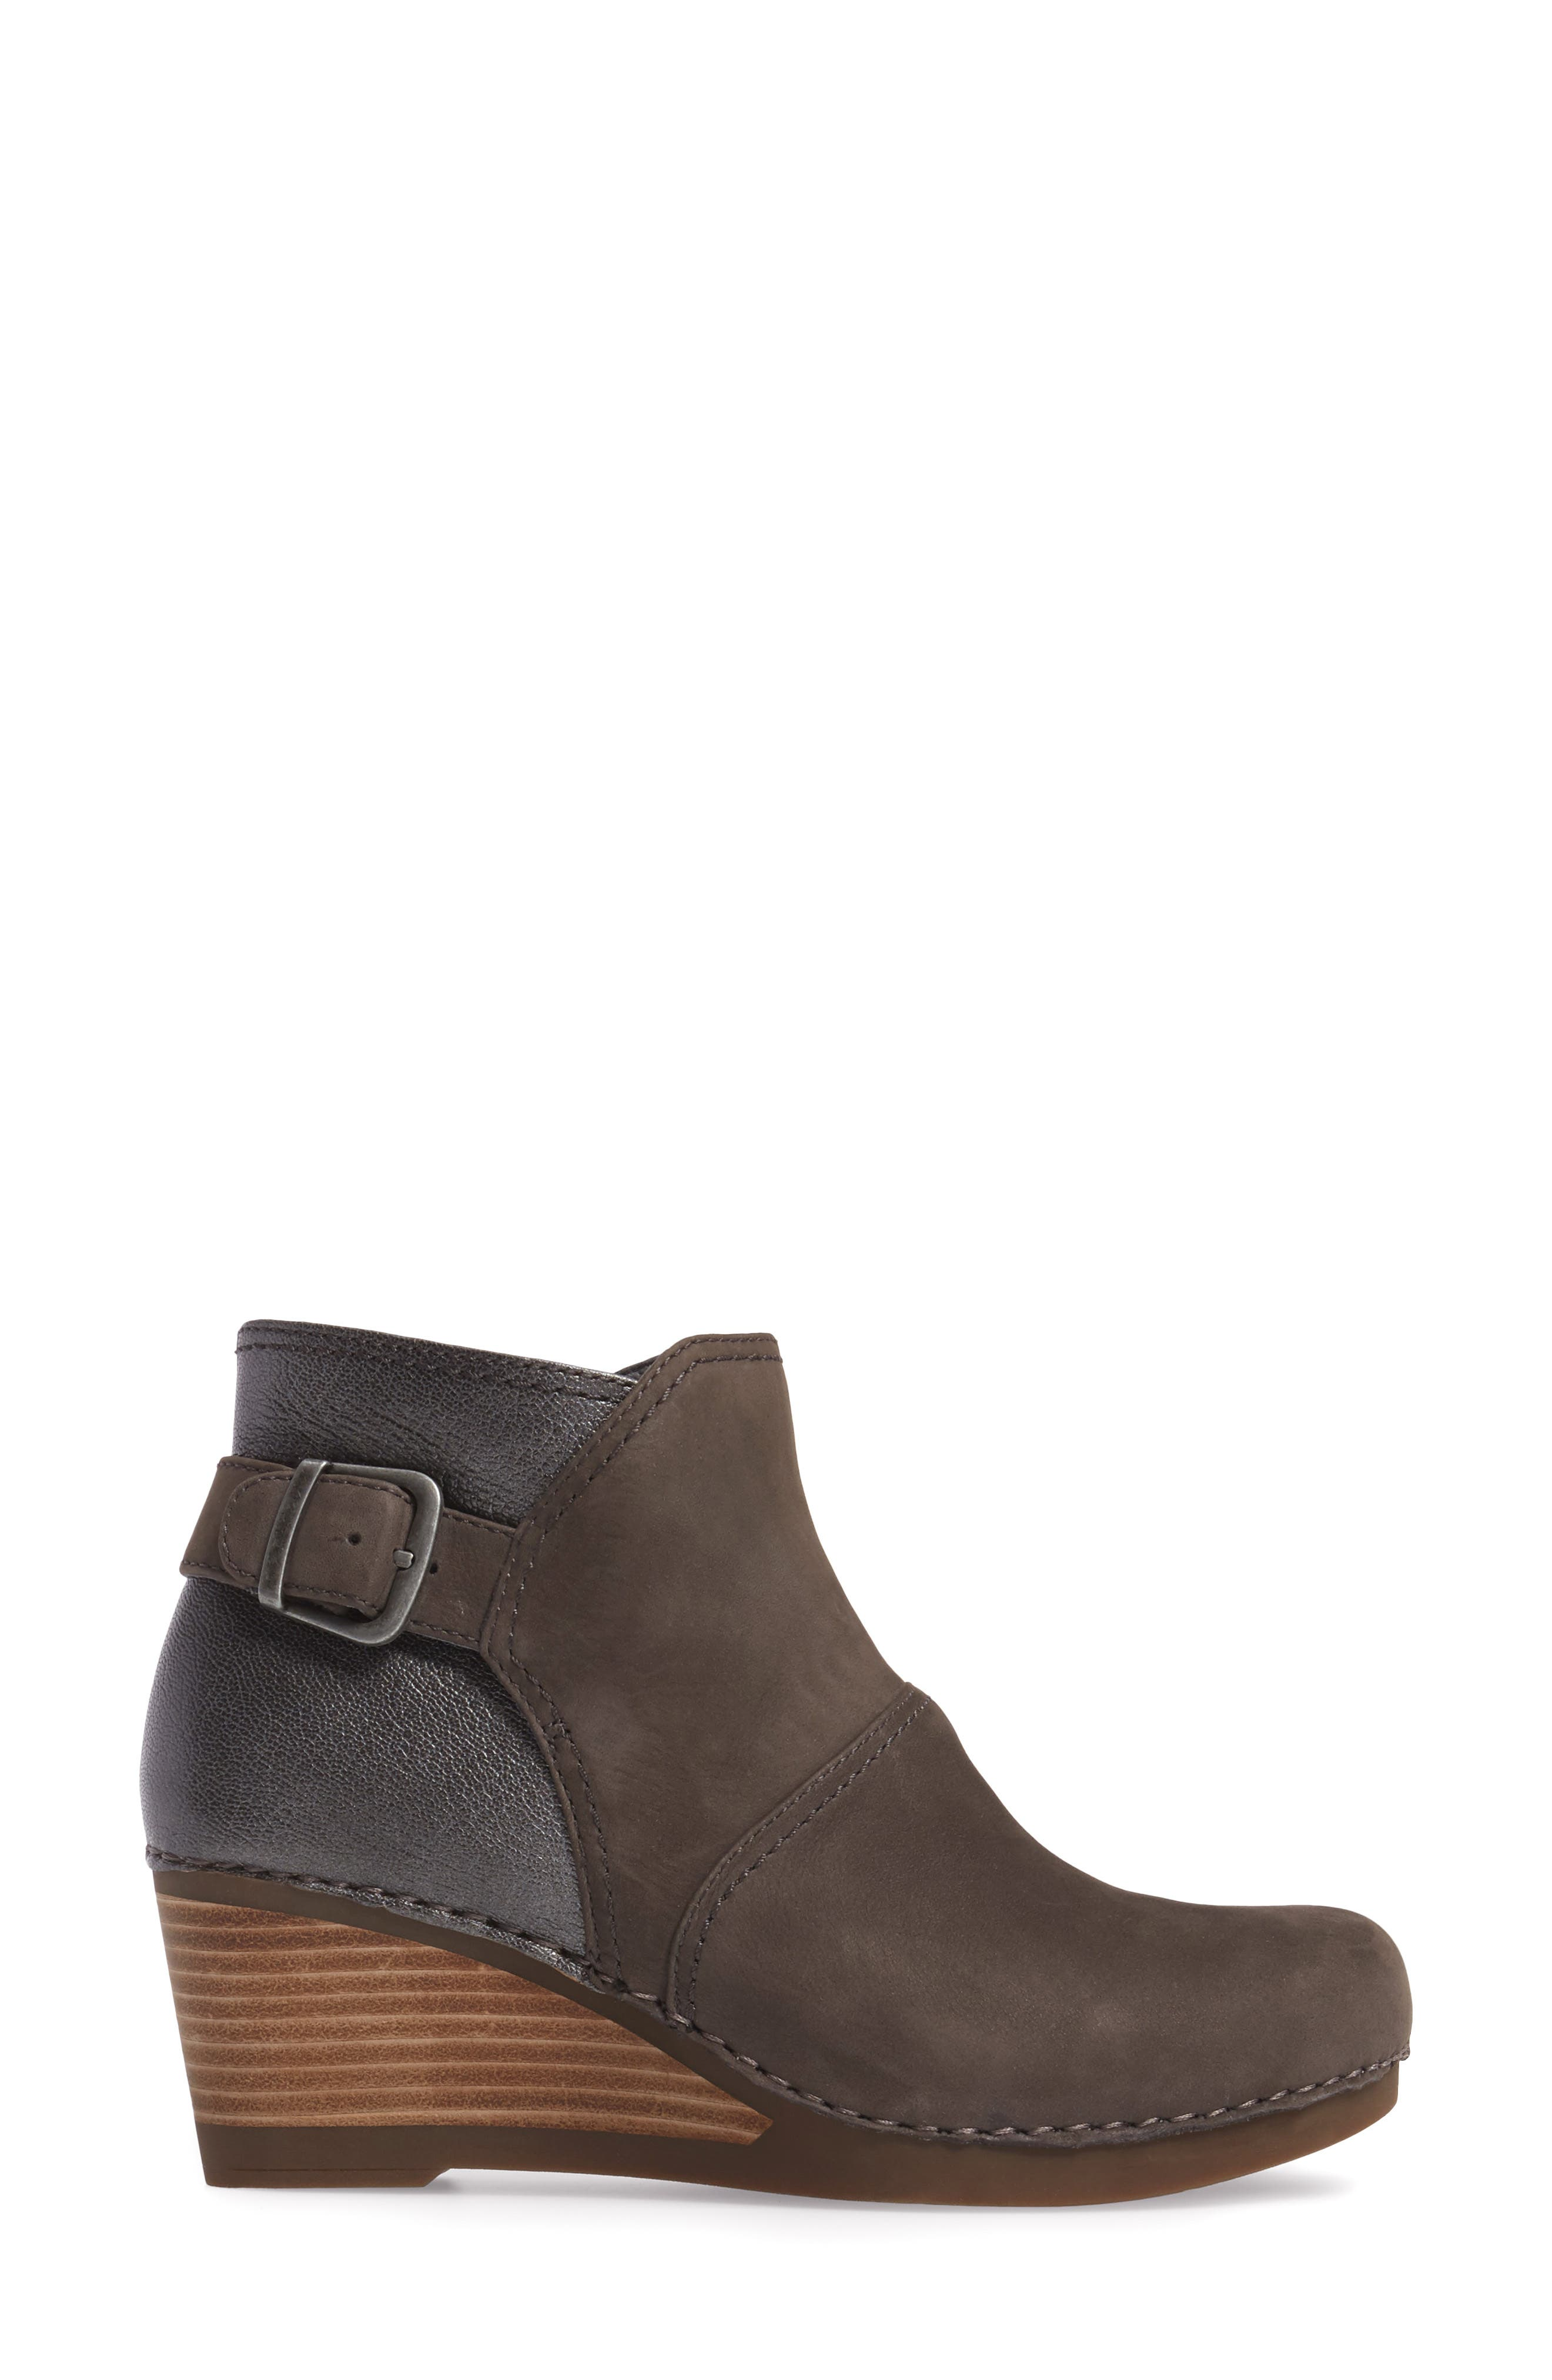 'Shirley' Wedge Bootie,                             Alternate thumbnail 13, color,